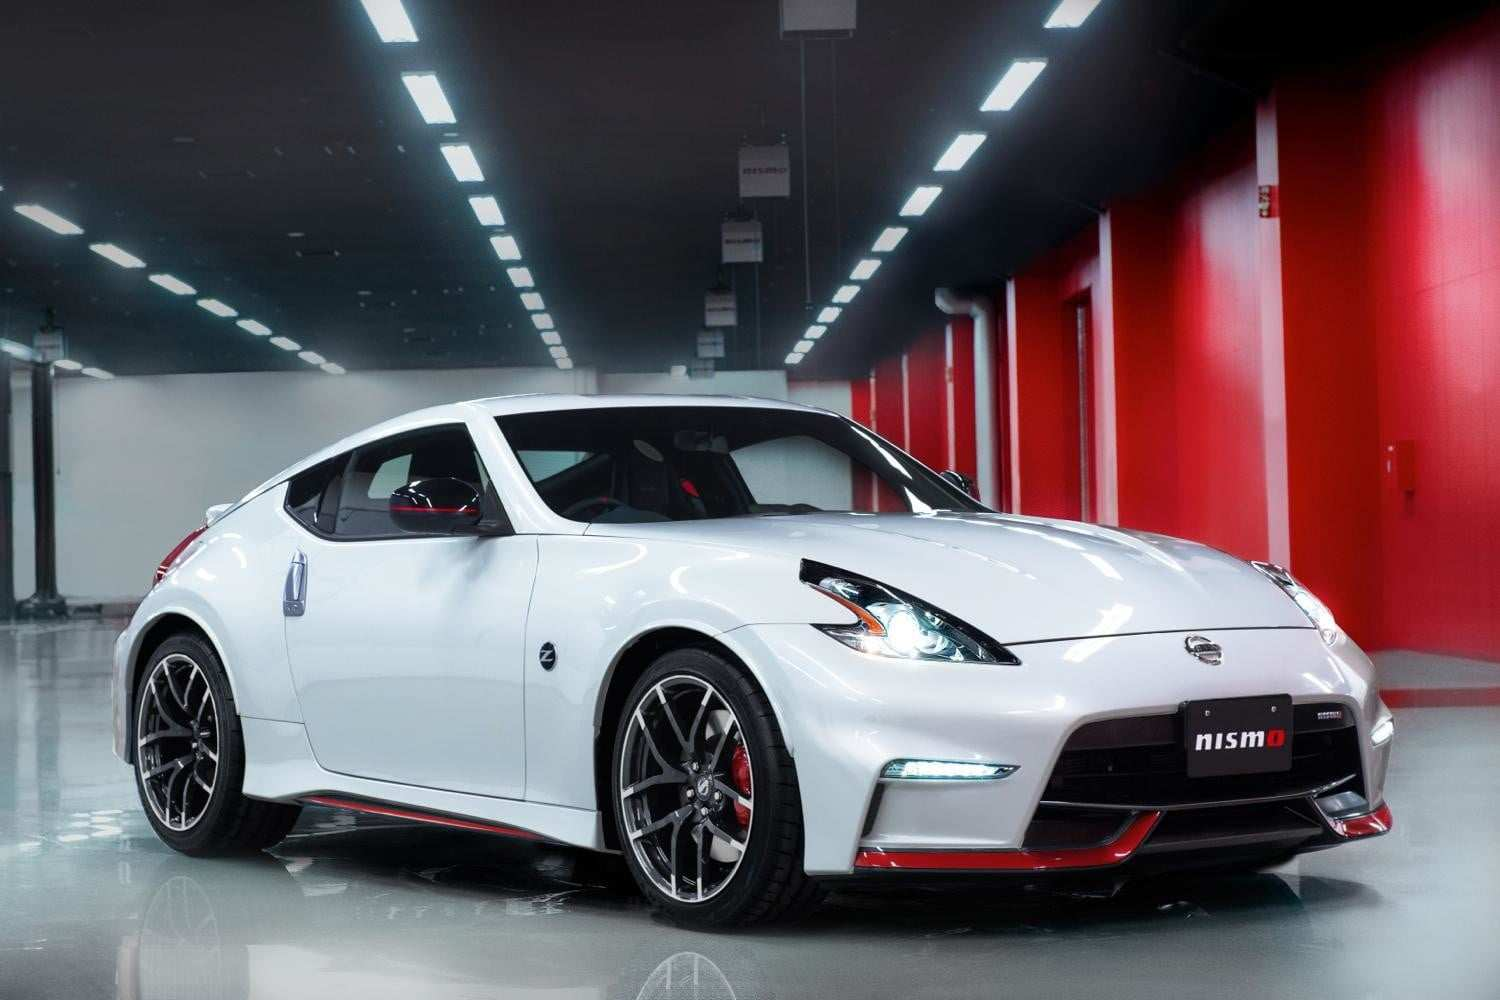 38 All New Z35 Nissan Reviews for Z35 Nissan